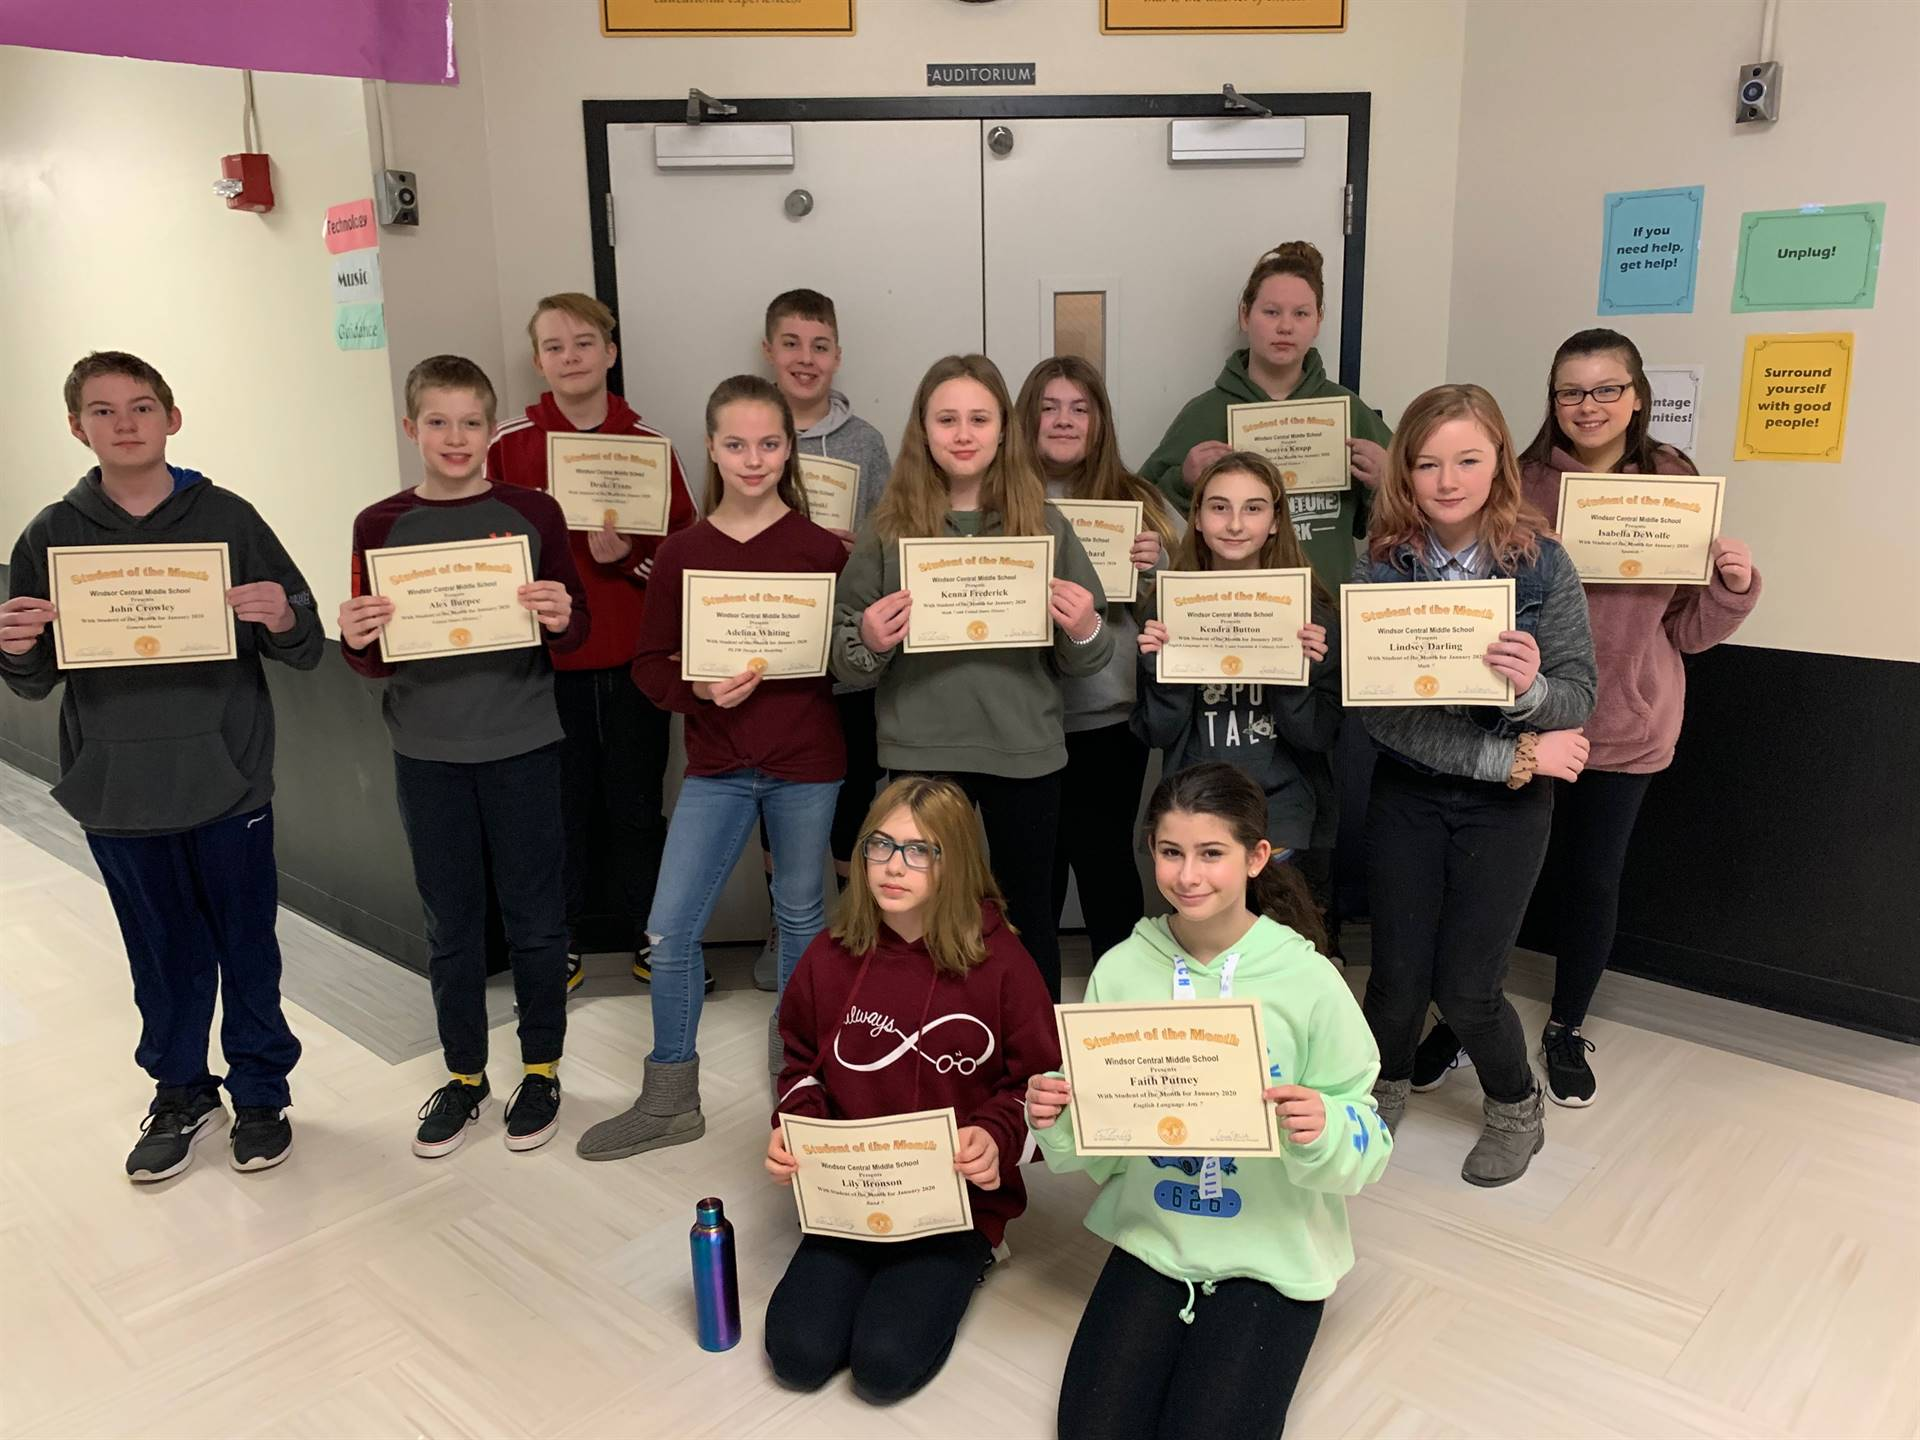 Three rows of 7th grade students holding certificates